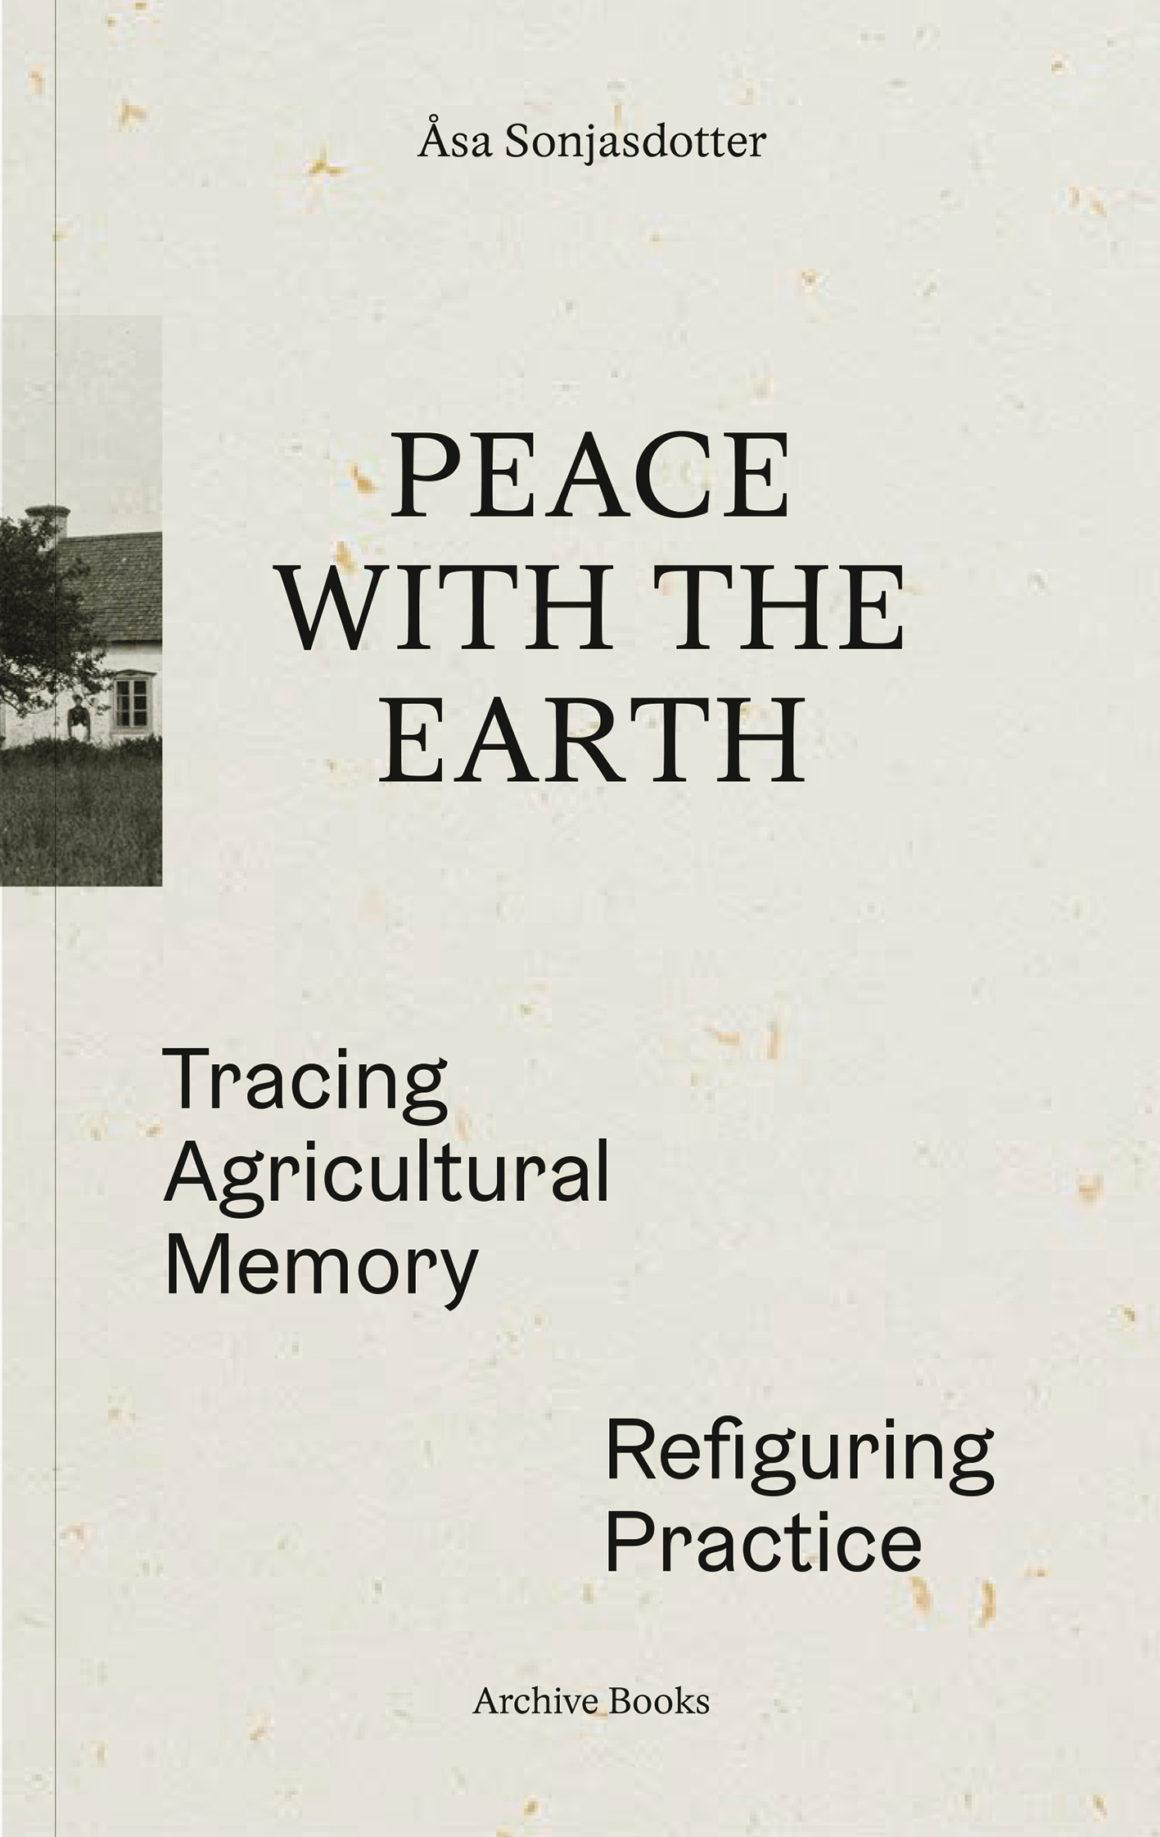 Peace with the Earth — Tracing Agricultural Memory, Refiguring Practice